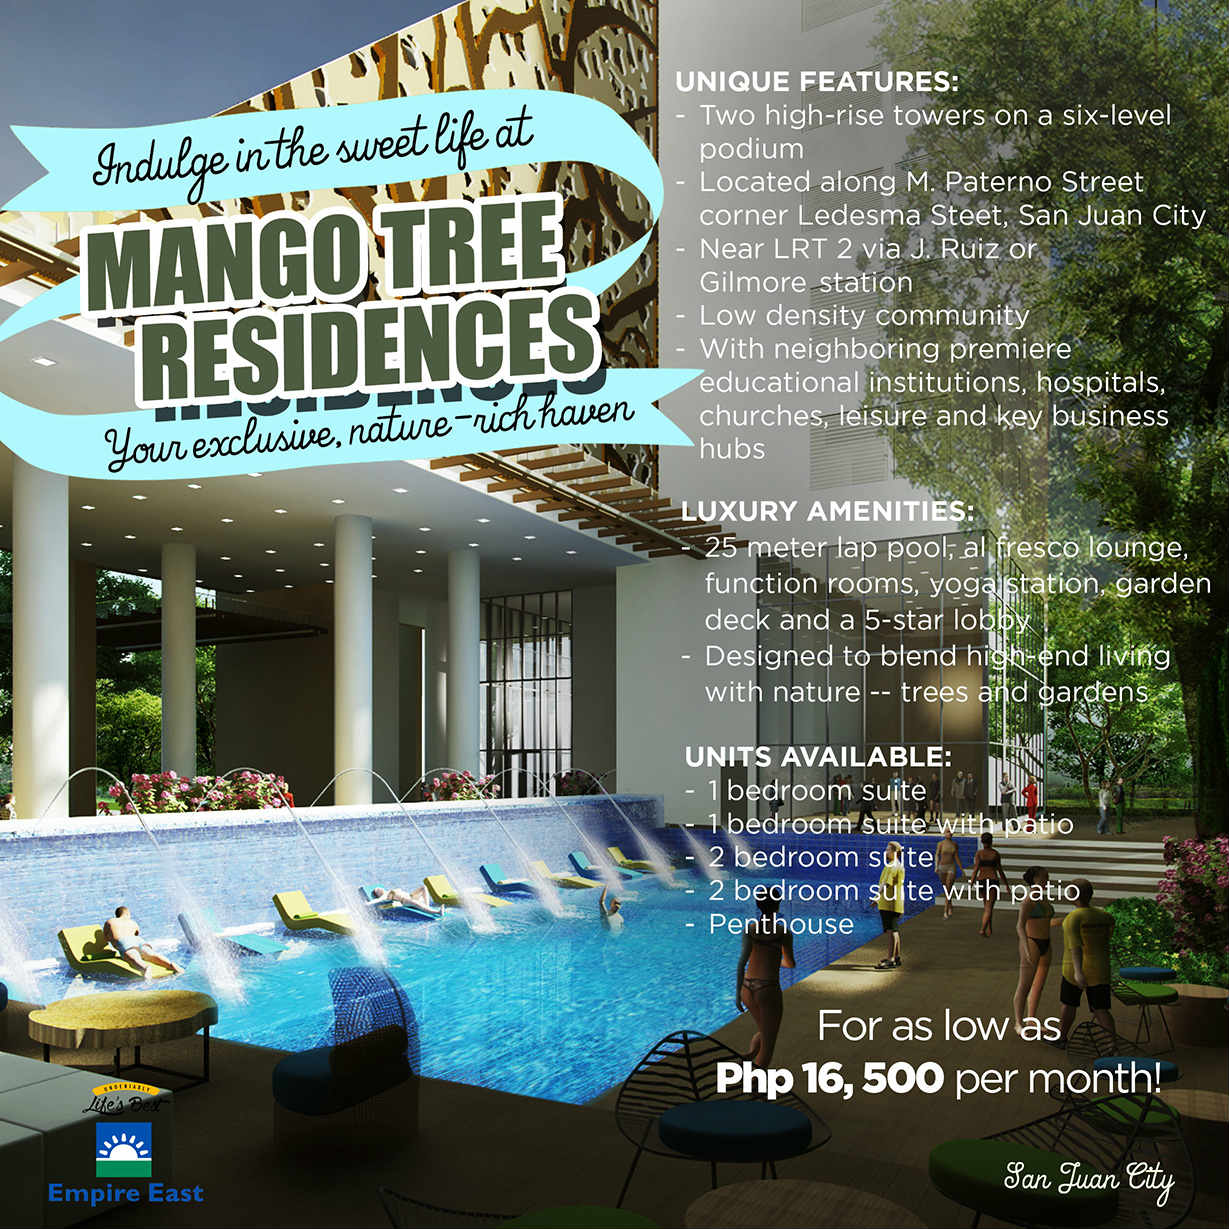 Condominium in sanjuan for as low as 12k monthly No down payment